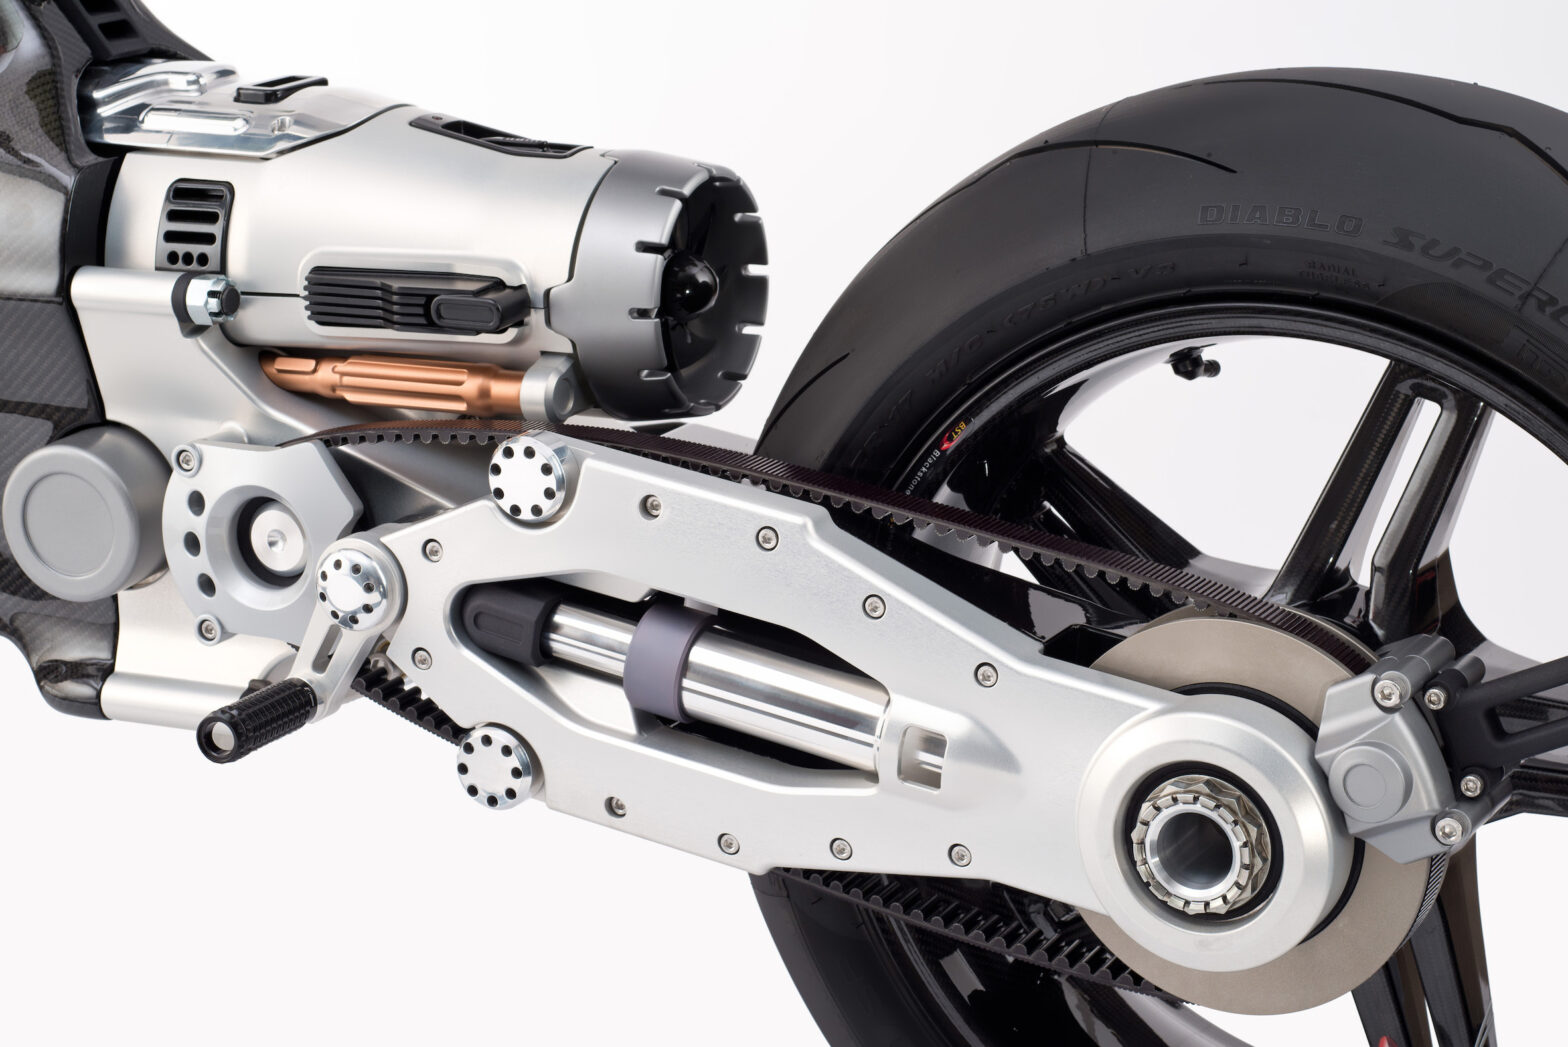 Blackstone Hypertek Electric Motorcycle Steals Everyone's Heart